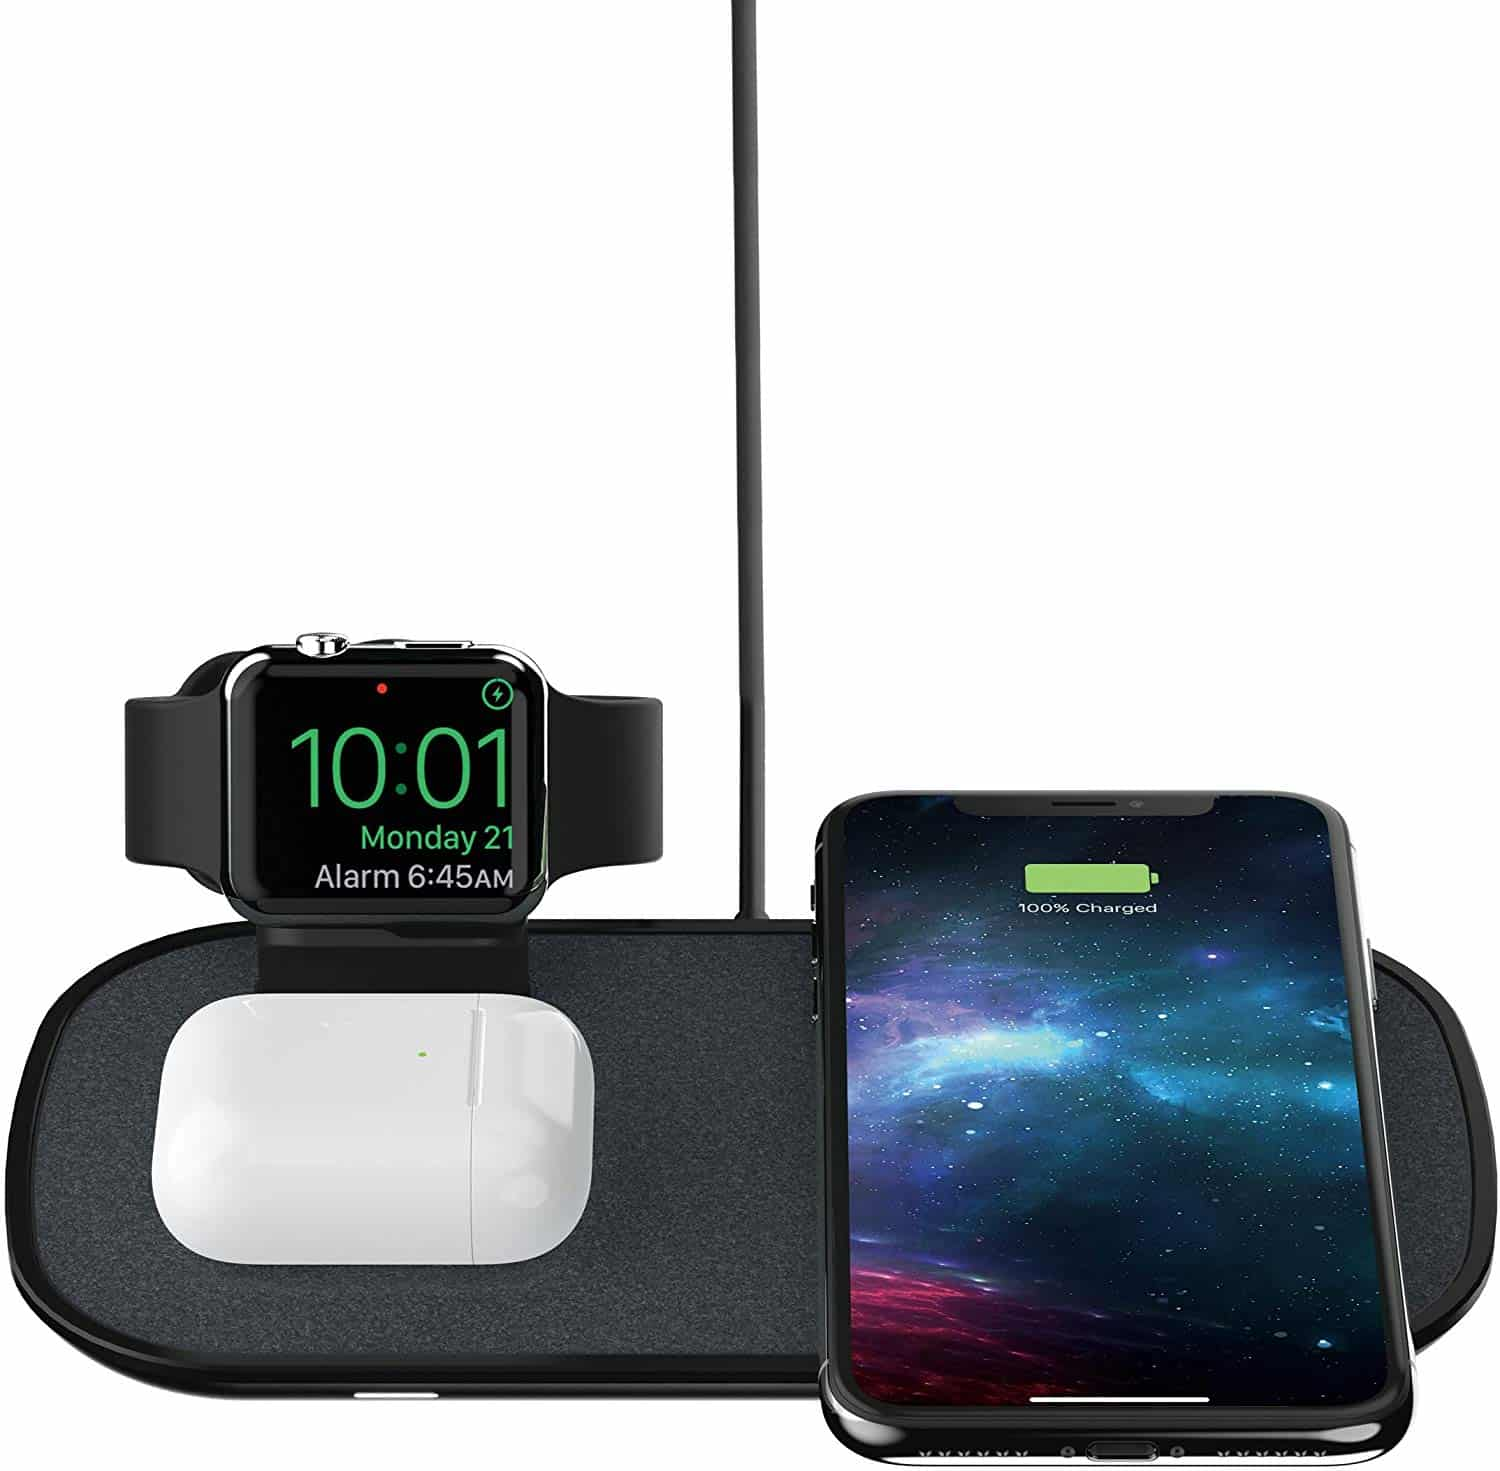 mophie 3 in 1 Wireless Charge Pad - Qi Wireless Charging Pad-min